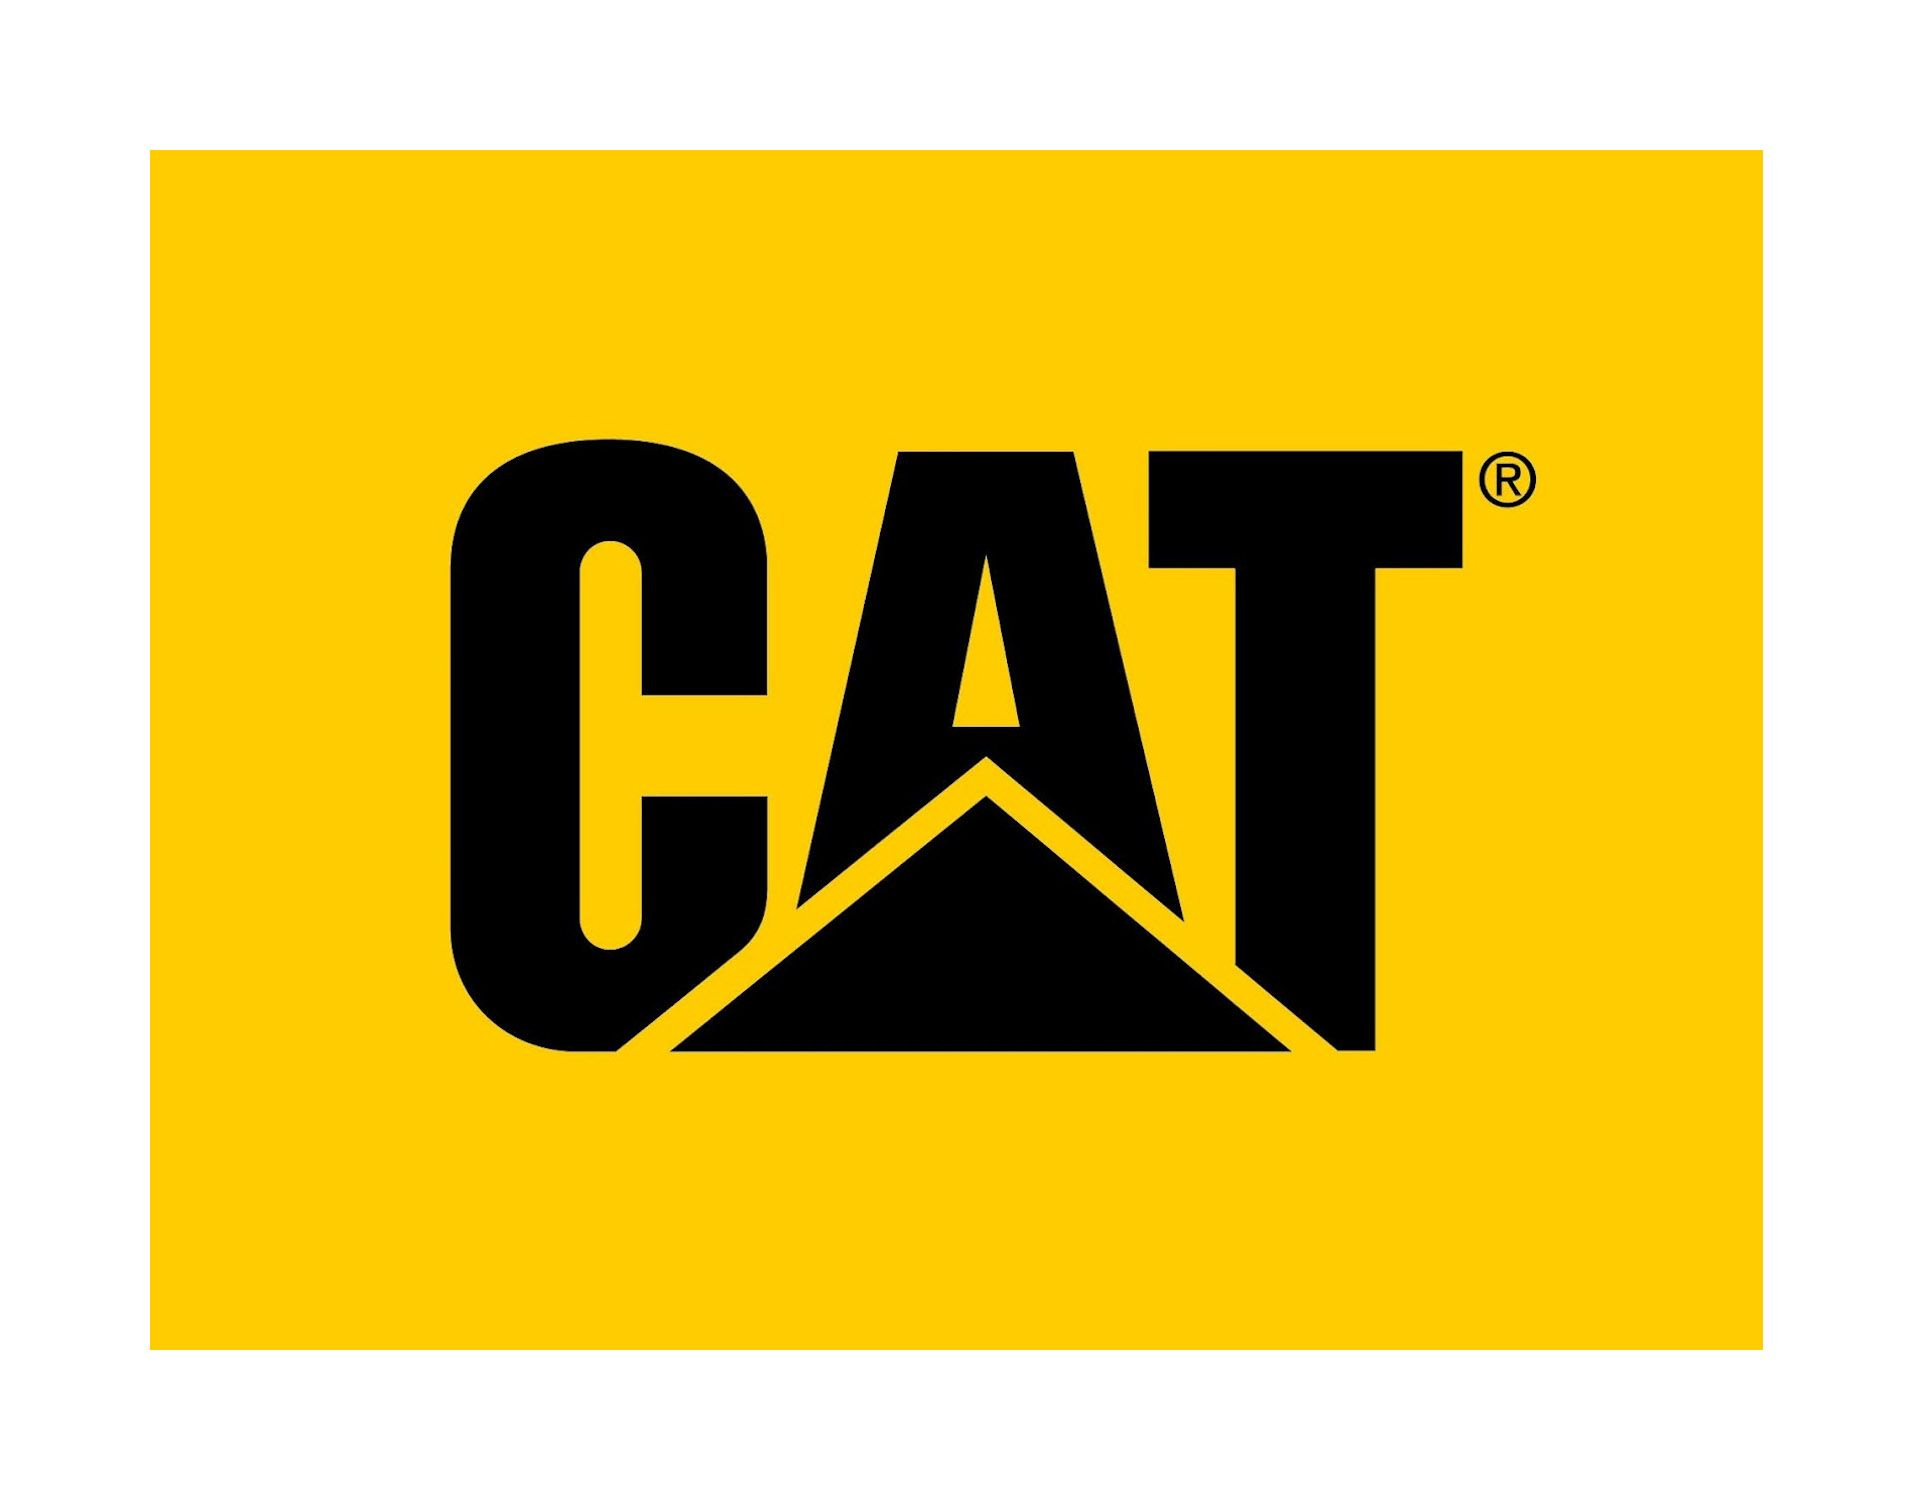 Meaning Caterpillar Logo And Symbol History And Evolution Caterpillar Logos Caterpillar Inc